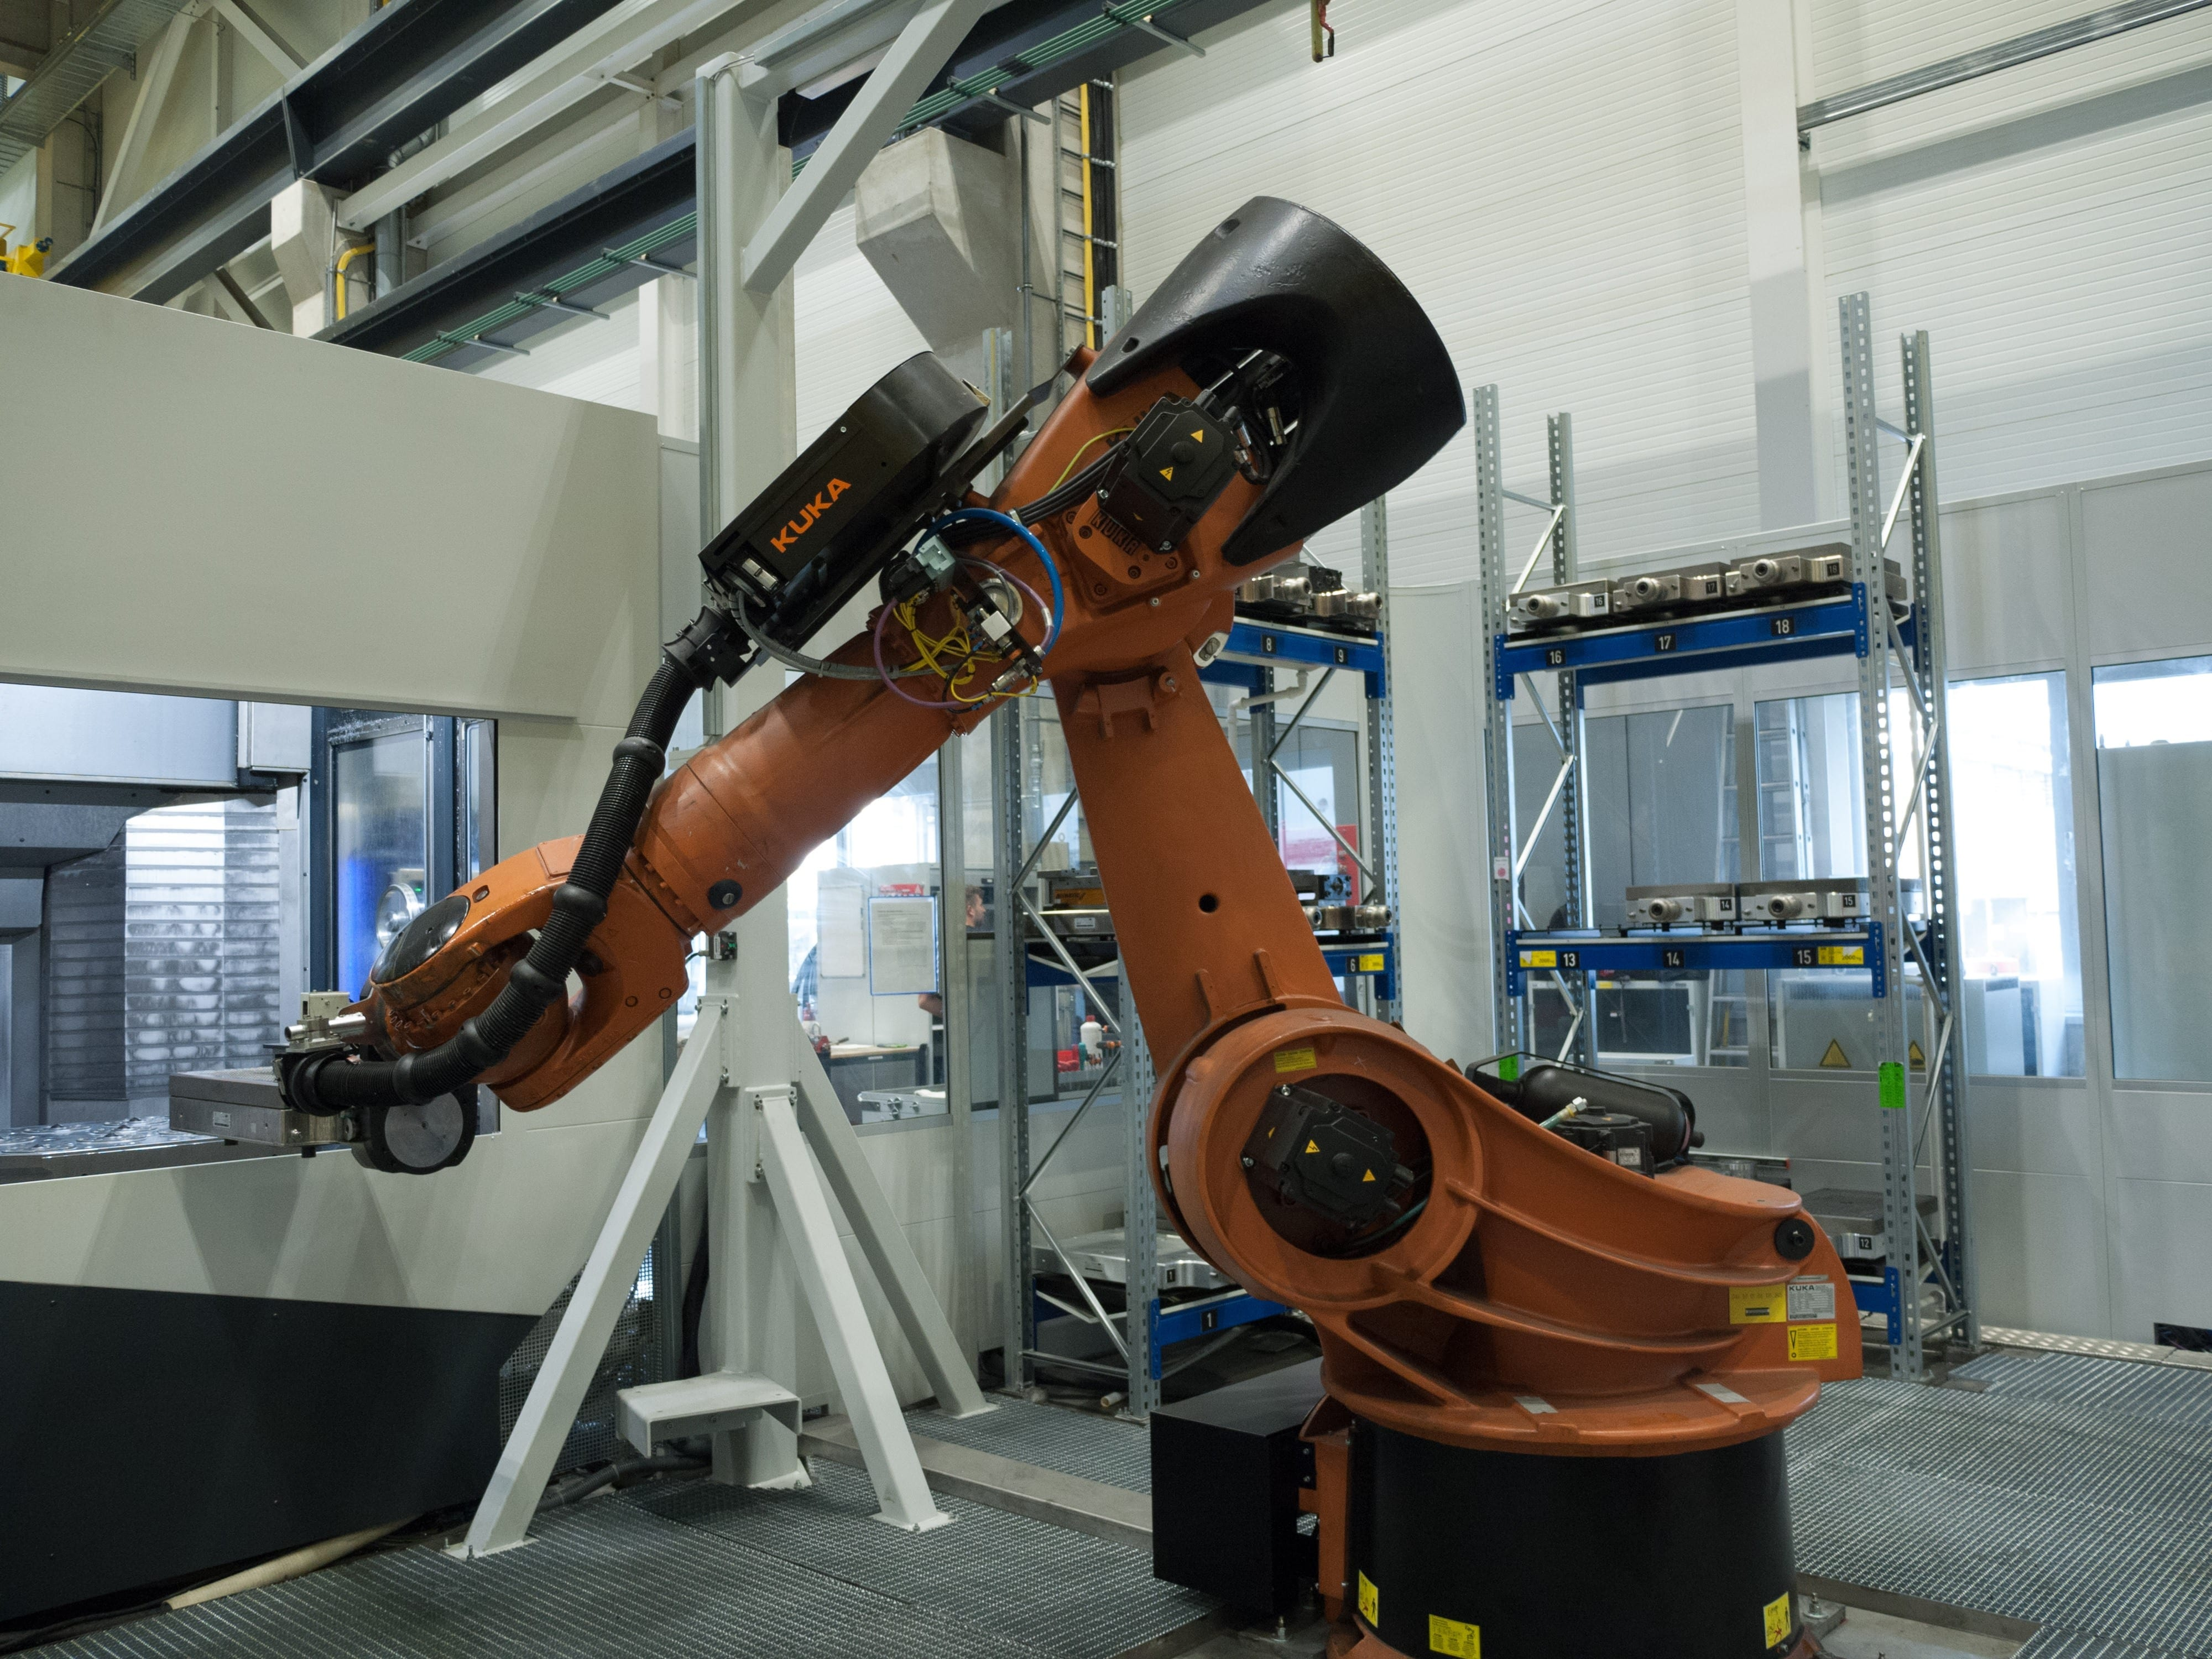 5-axis machine tool automation for increased productivity